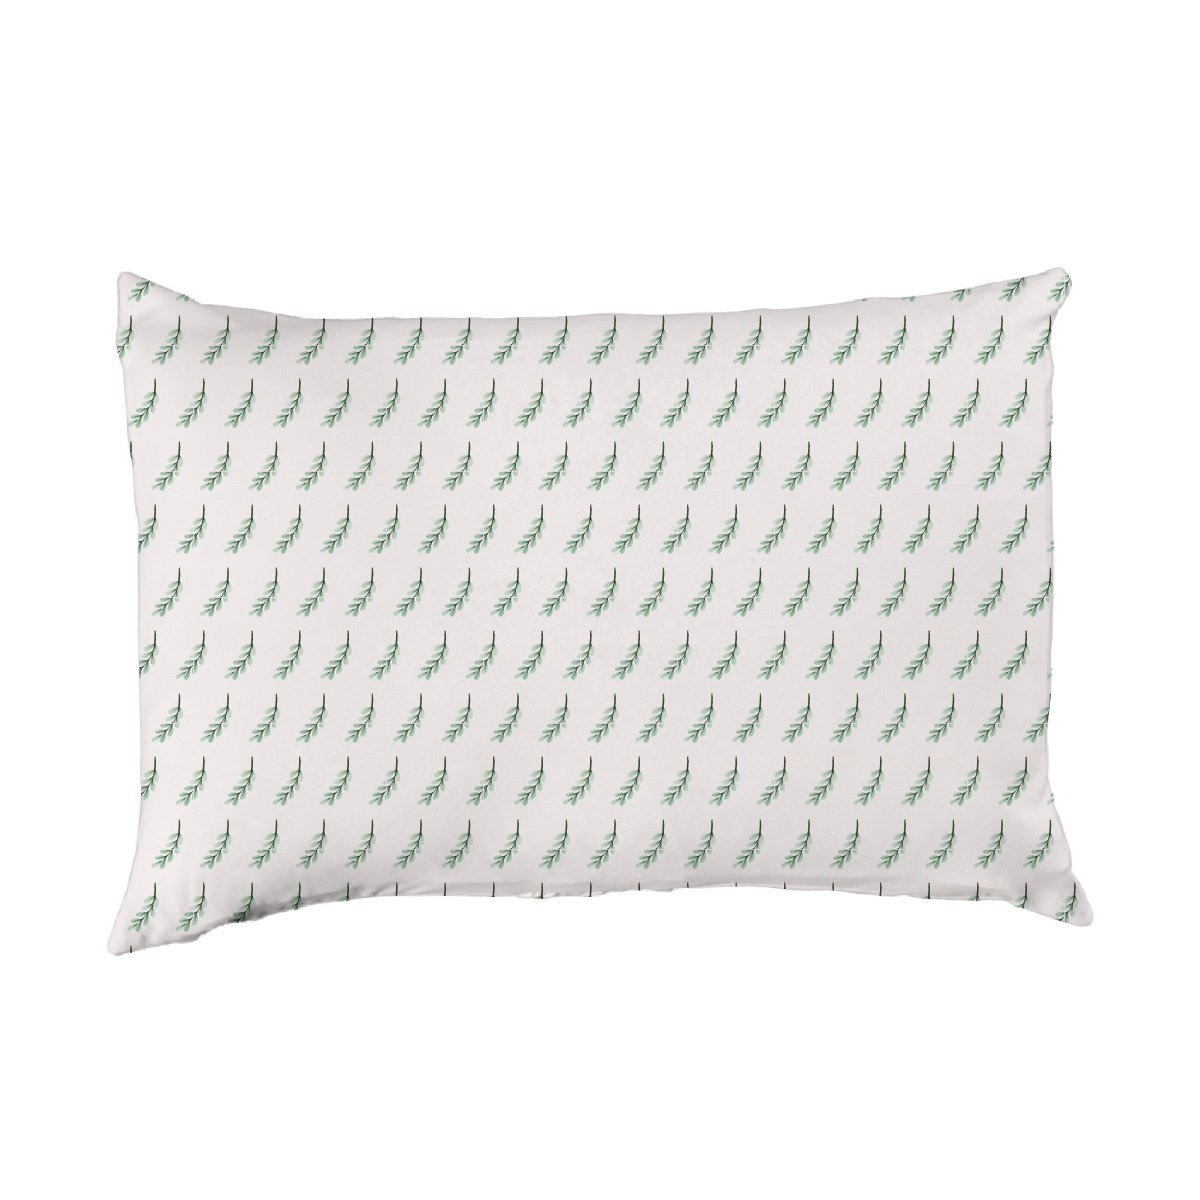 Charley Ruth | Big Kid Pillow Case